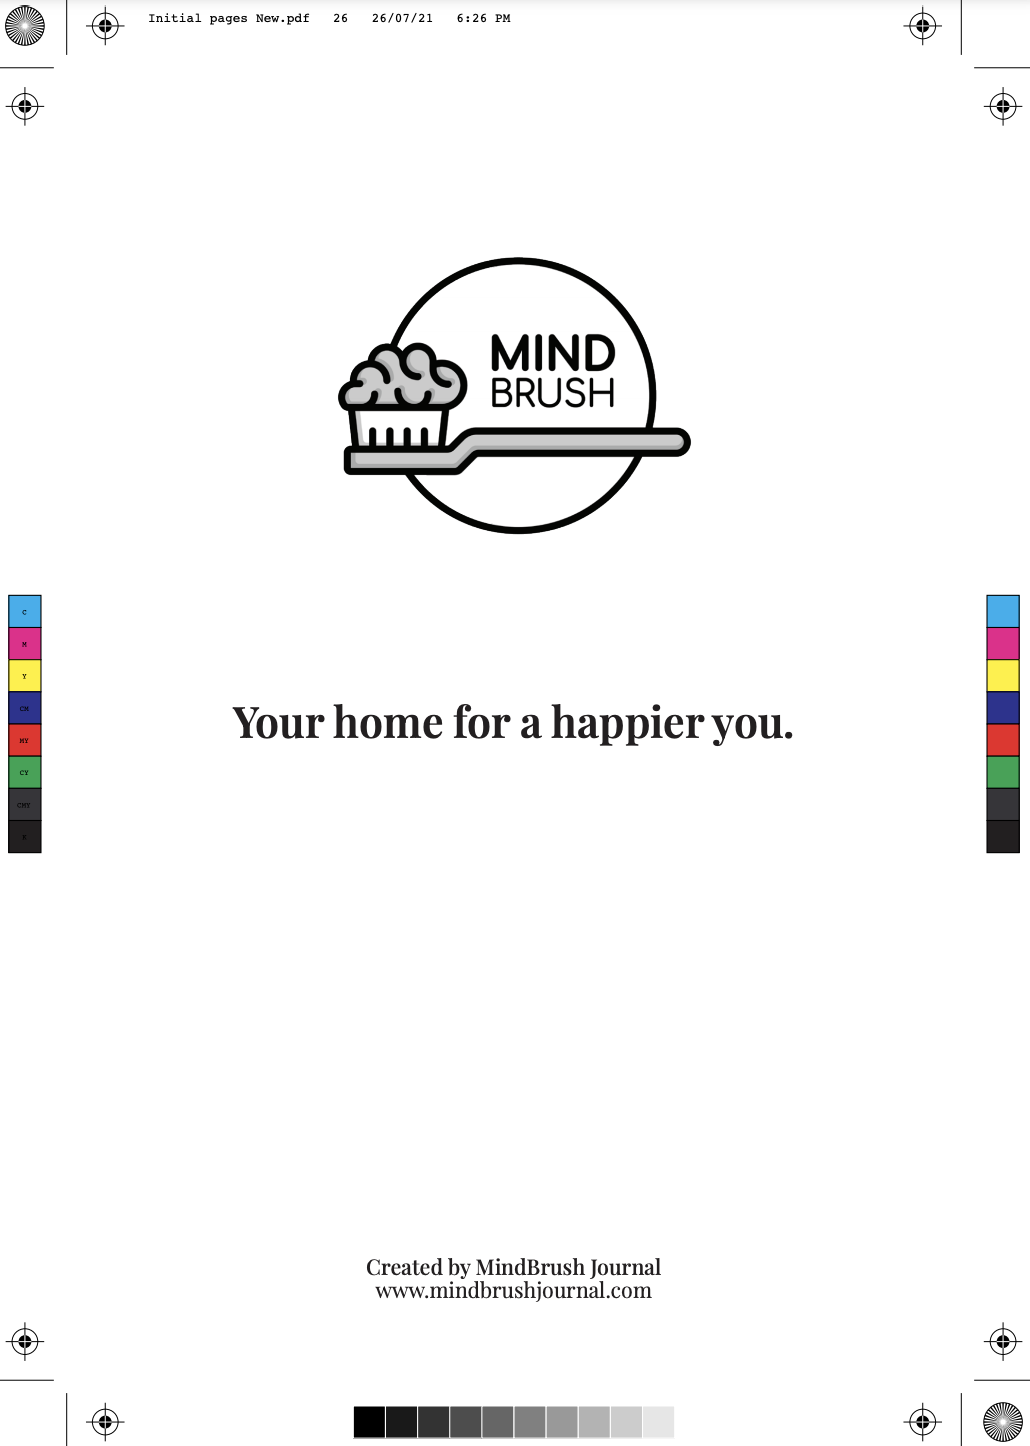 Mindbrush Launches Self-care Journal to Inspire People to Value their Mental Well-being as a Means to Happiness